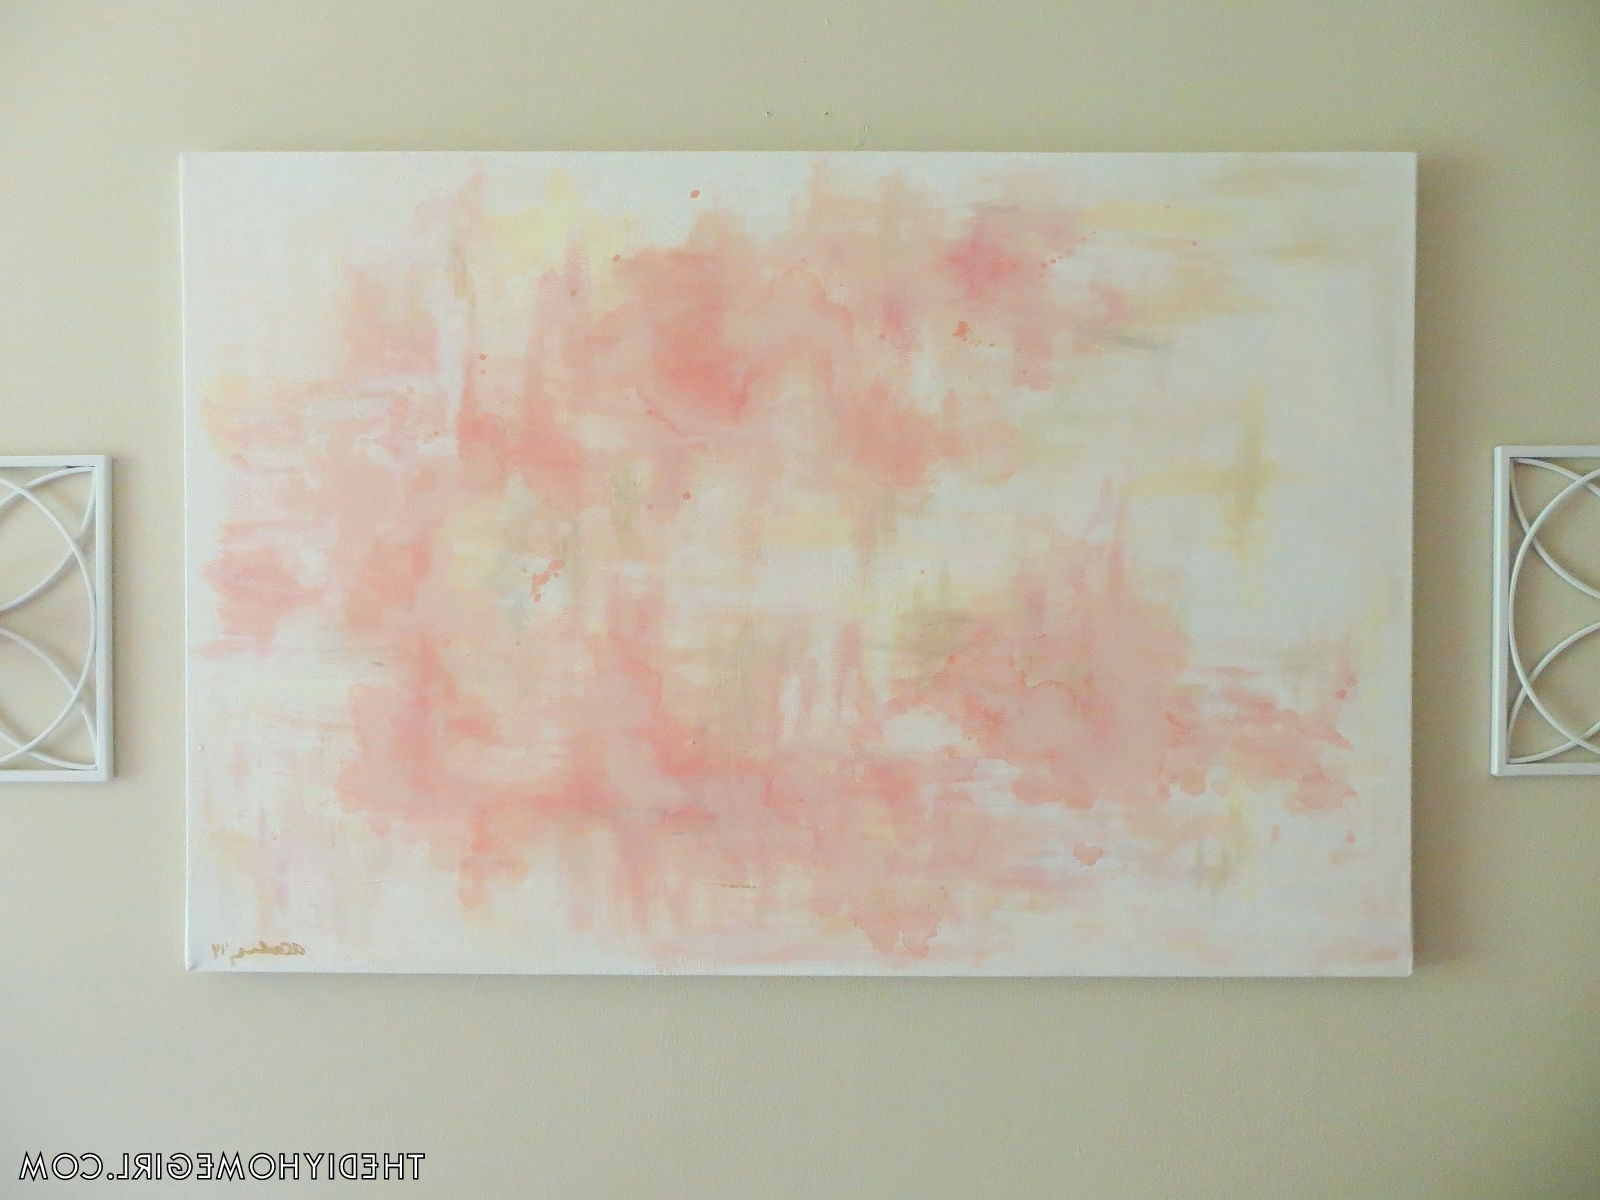 Diy Abstract Wall Art Salmon Shrimp Toast Pink Rose Gold Silver Throughout Best And Newest Pink Abstract Wall Art (View 7 of 15)